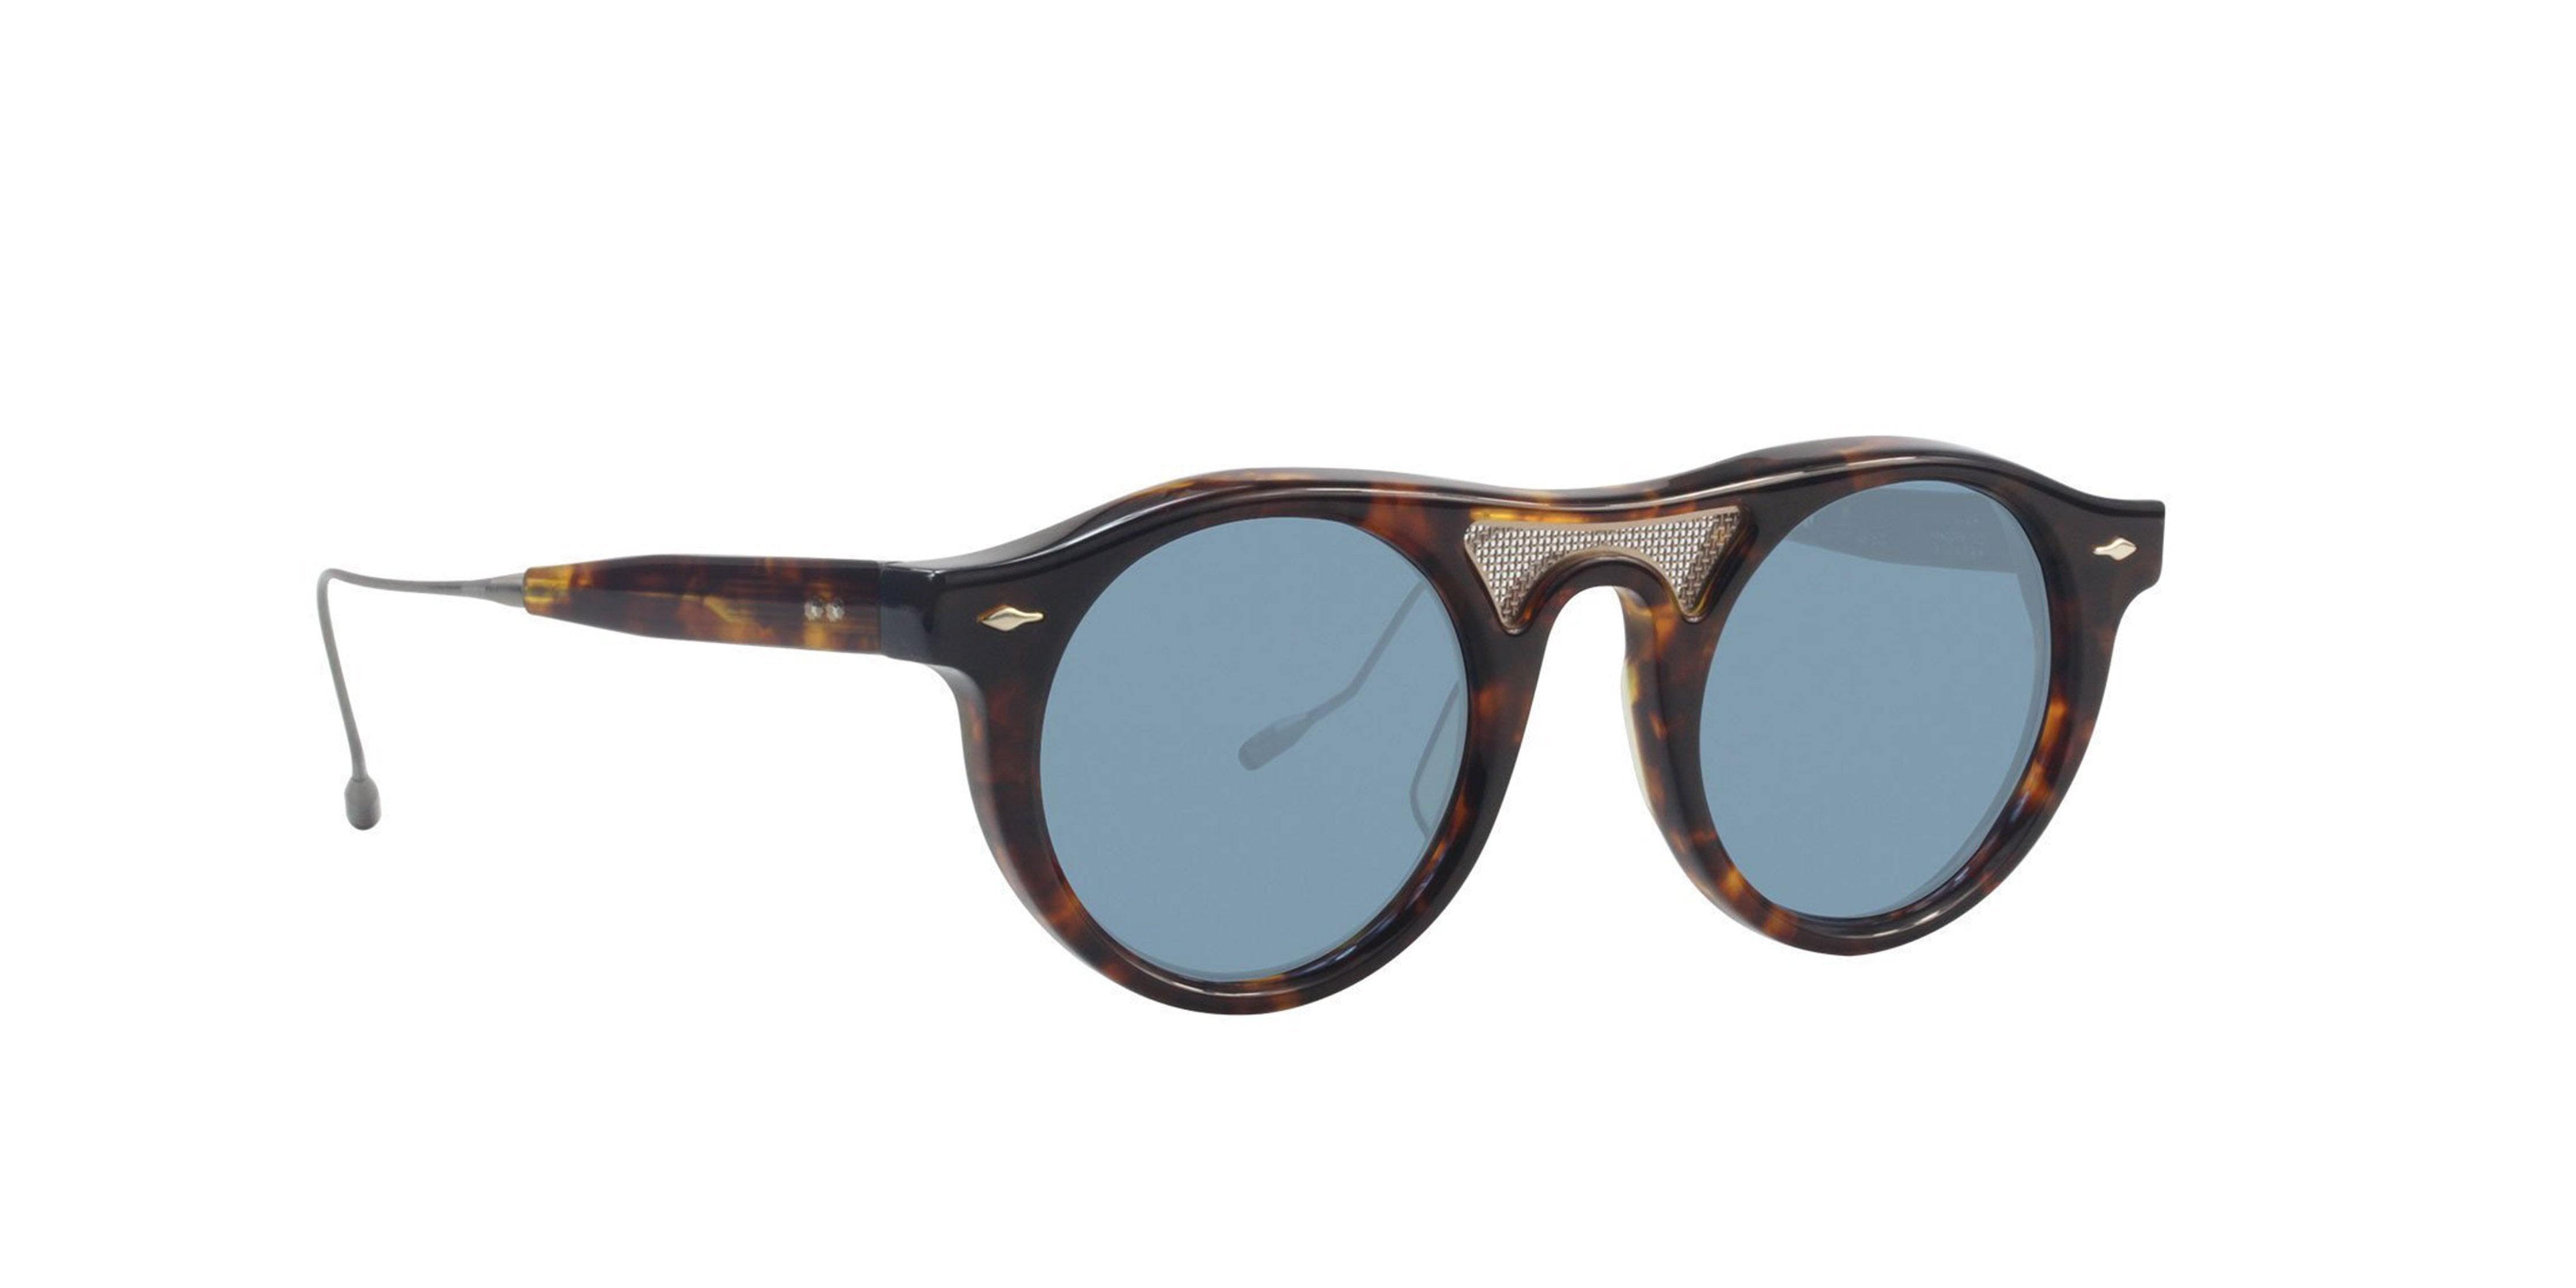 Jacques Marie Mage - Willem Tortoise/Blue Oval Unisex Sunglasses - 45mm-Sunglasses-Designer Eyes